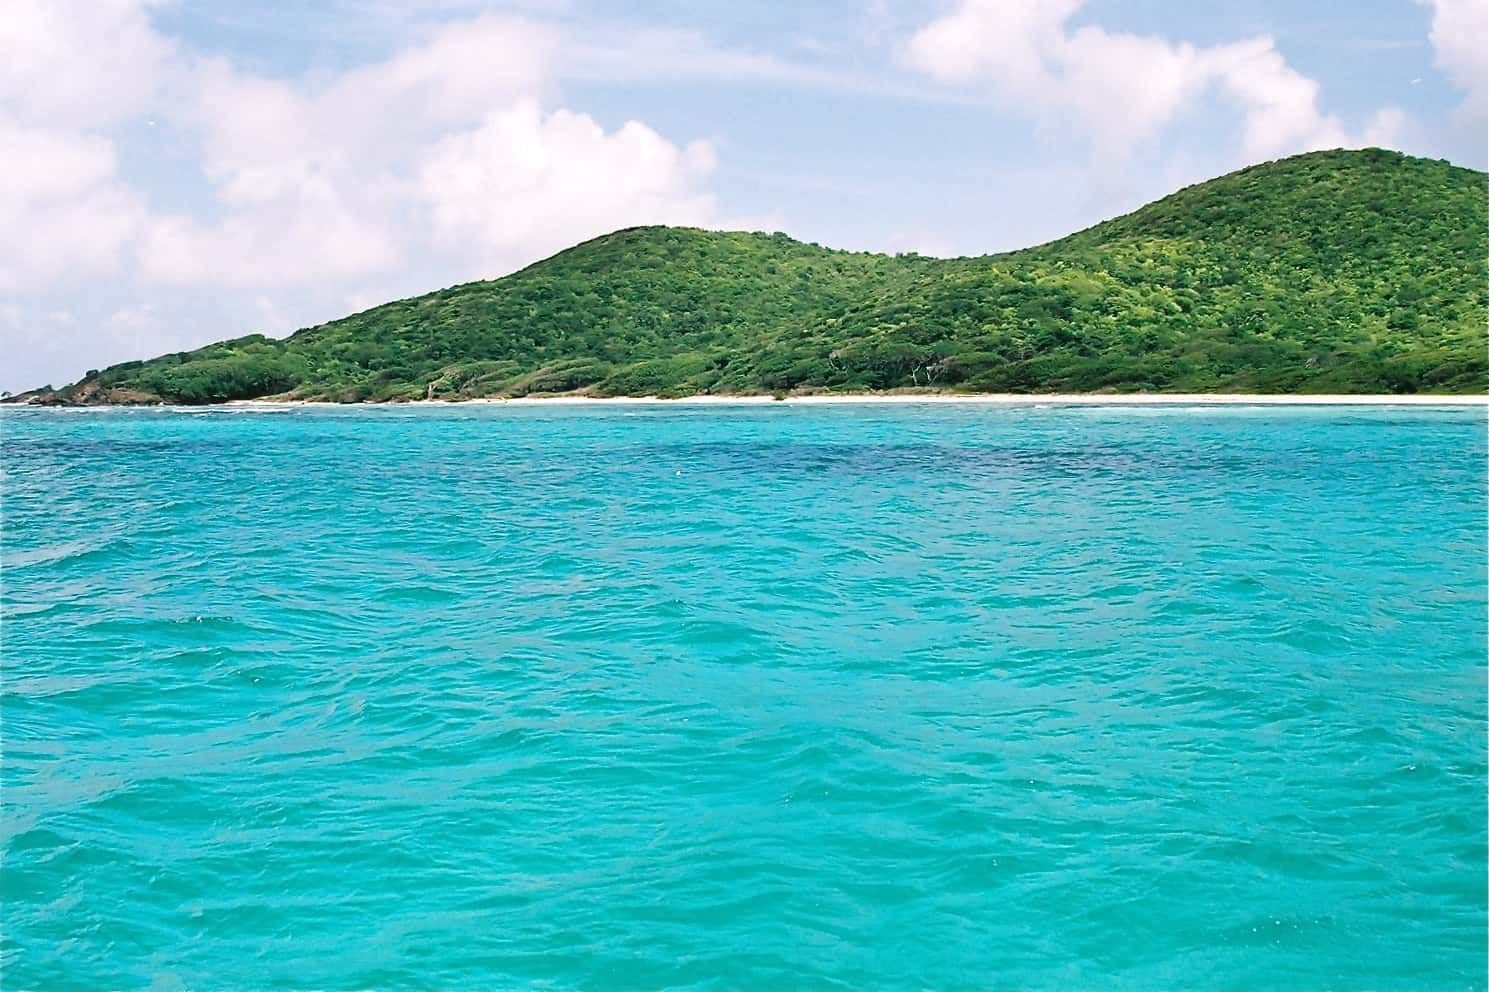 Caribbean Islands: How To Choose Which Caribbean Island To Visit On Your Next